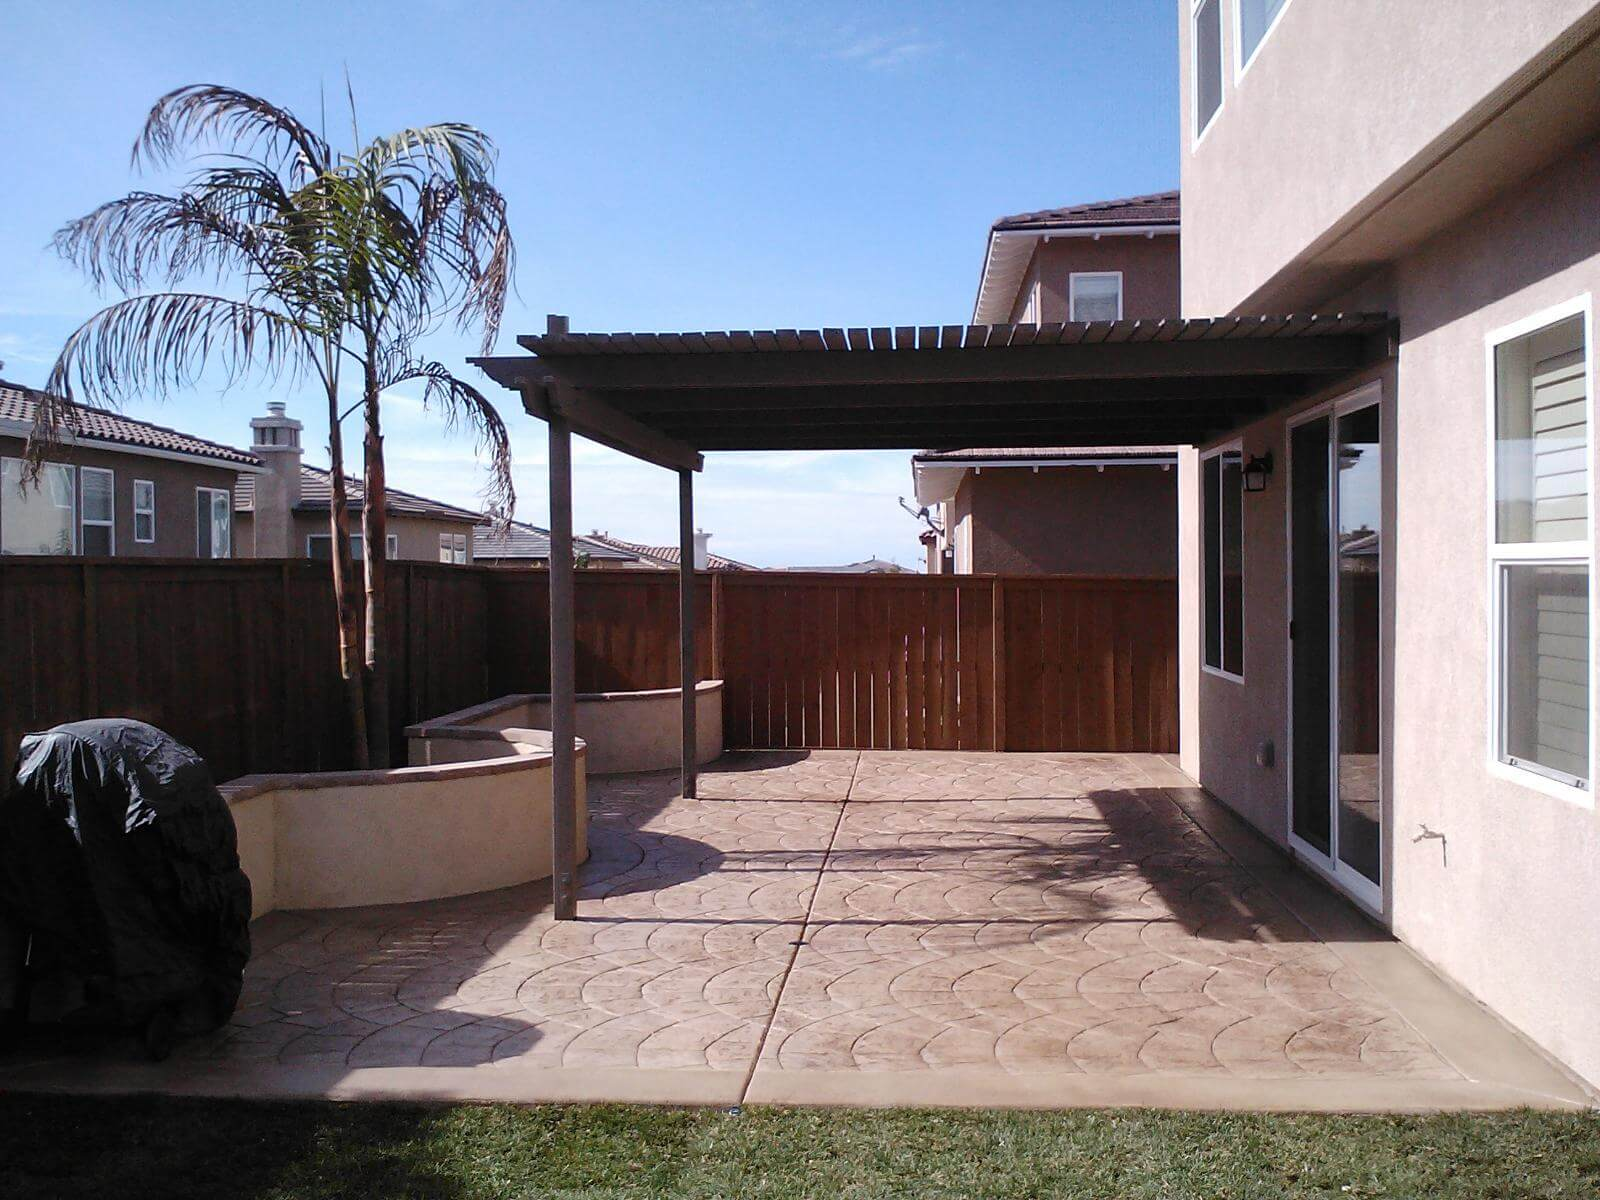 Concrete Patio Contractors-San Diego Custom Concrete Pros & Concrete Repair Services